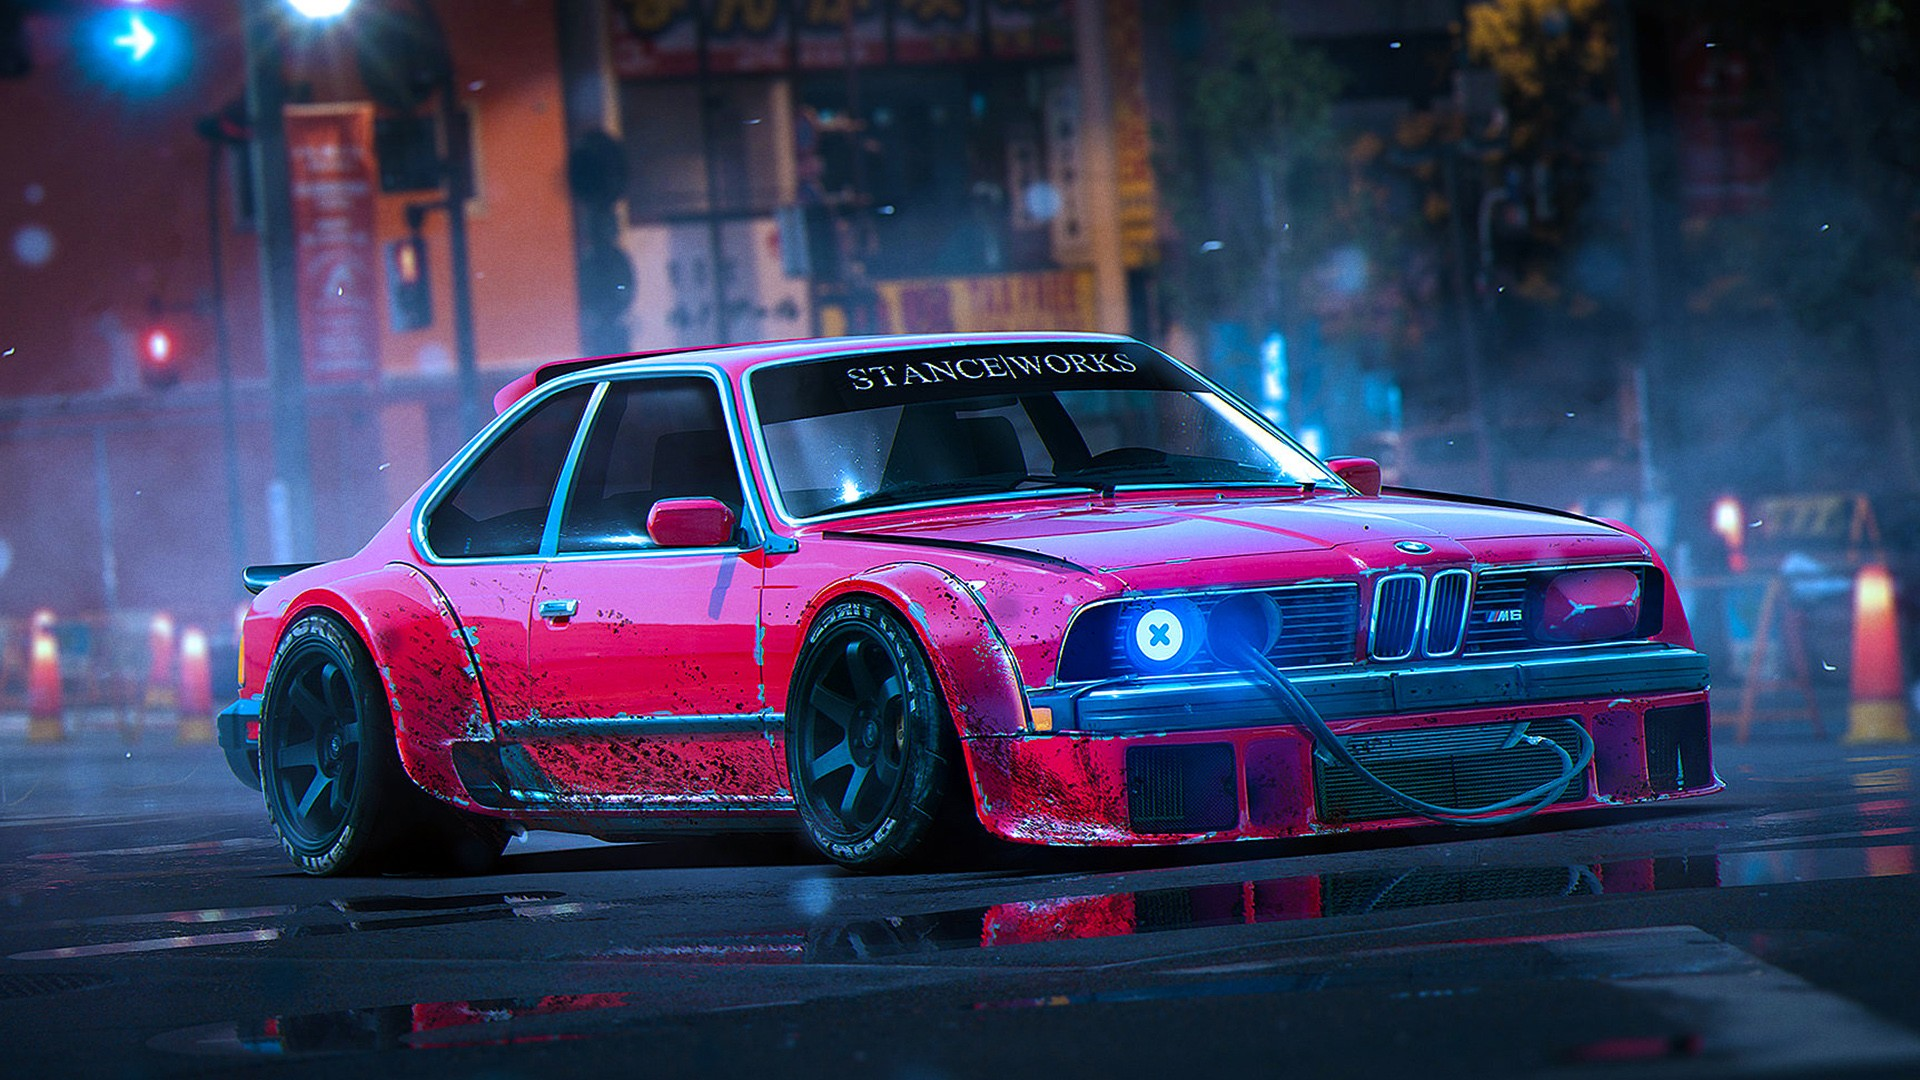 Desktop Wallpaper Red Bmw Old Car From Video Game Hd